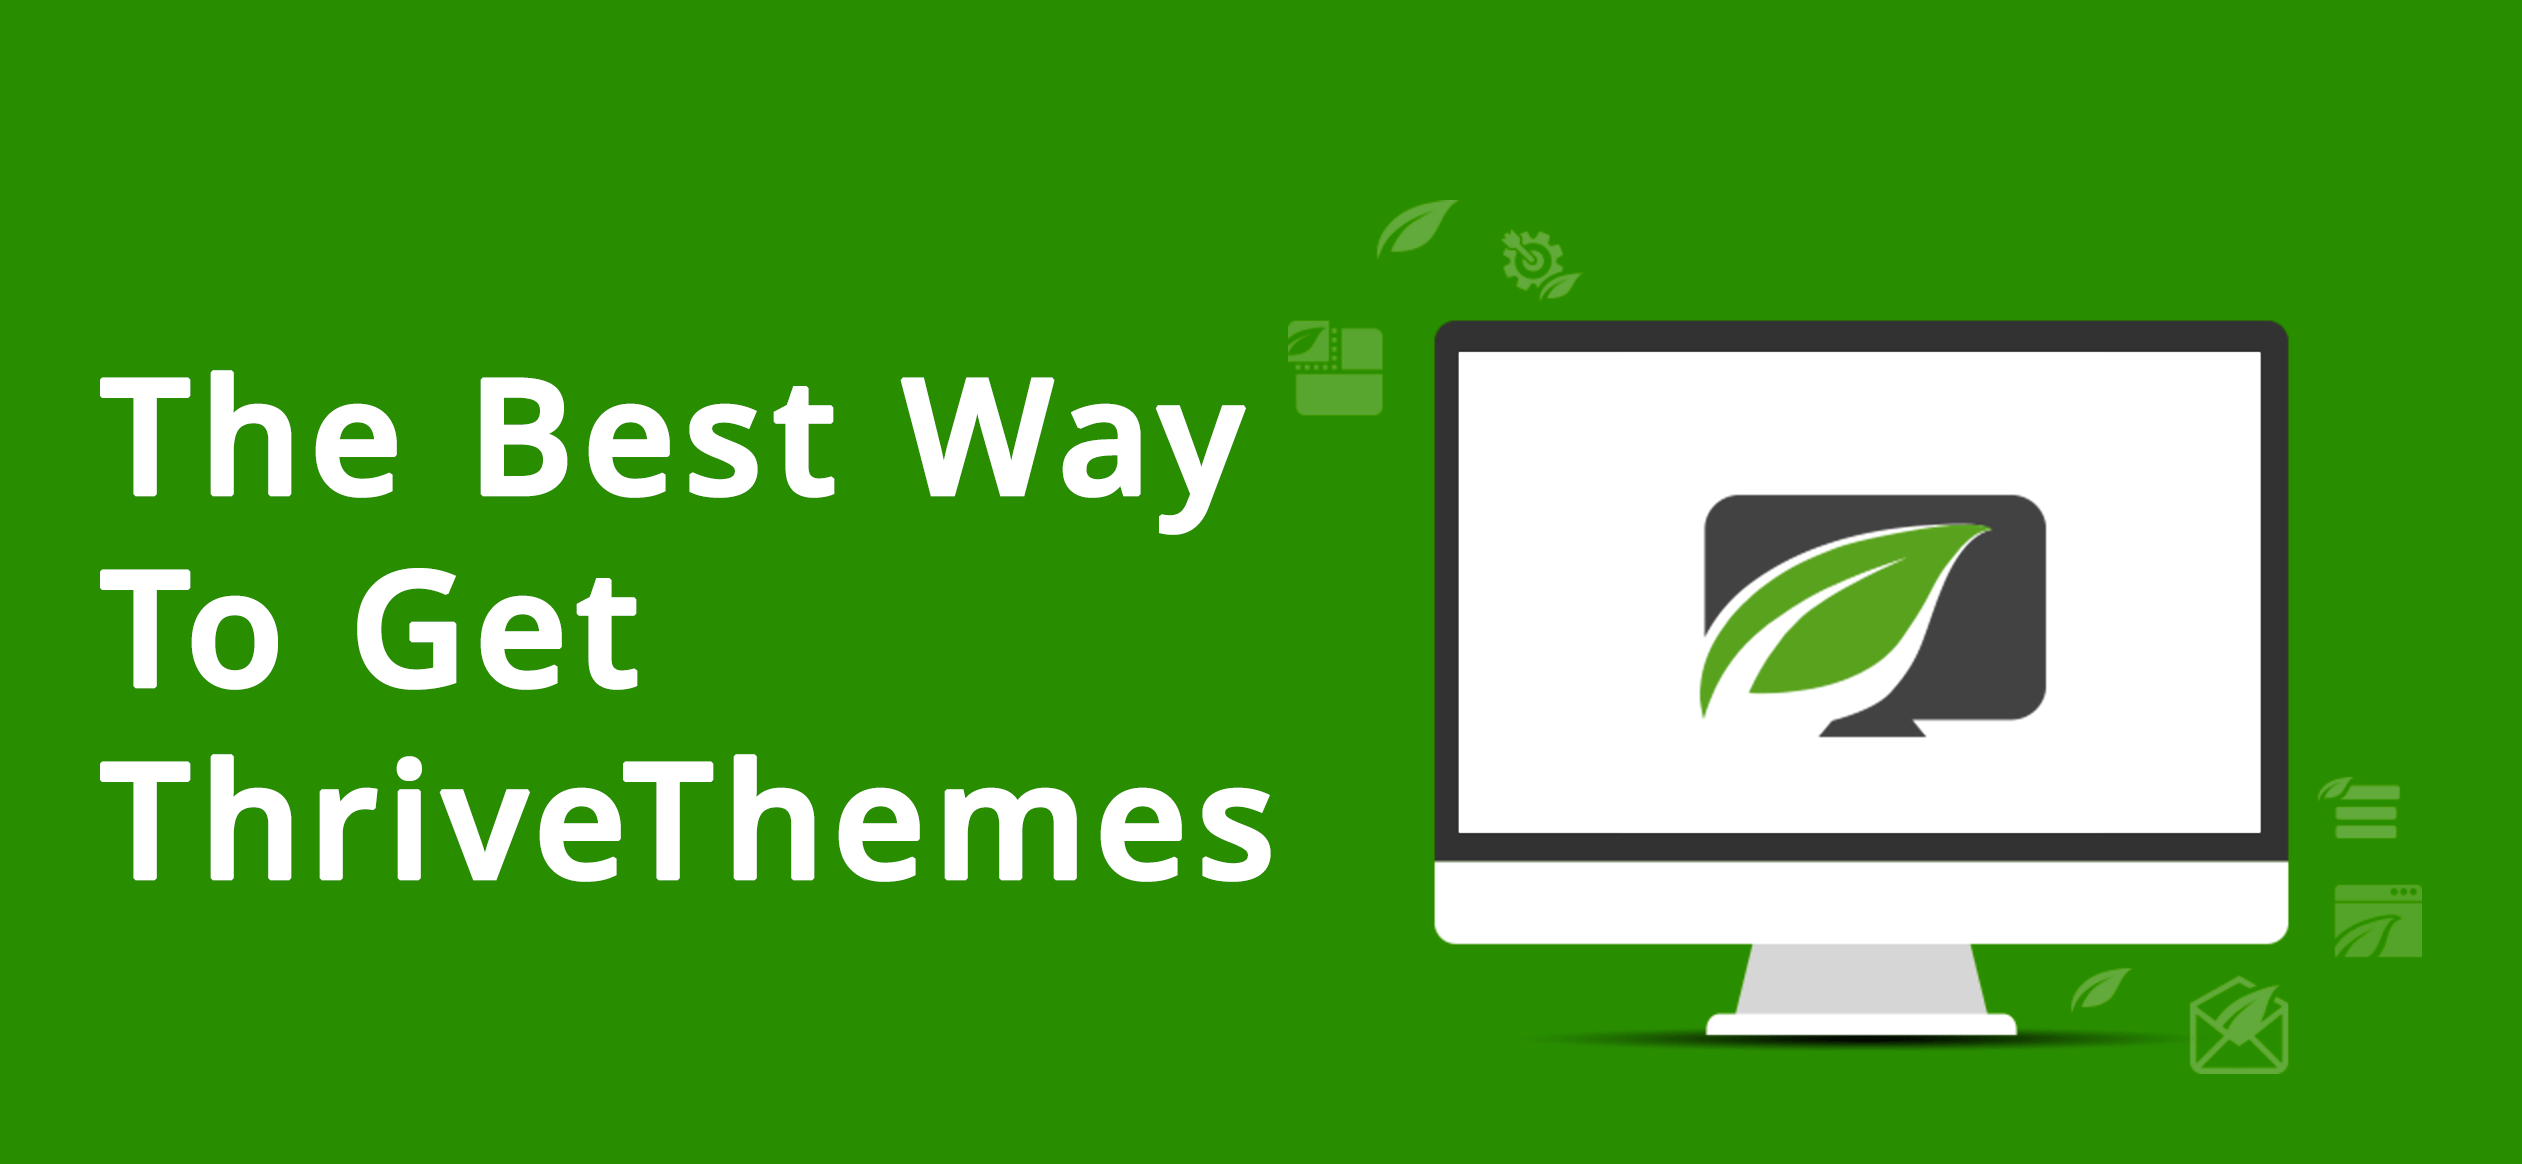 The Best Way To Get ThriveThemes